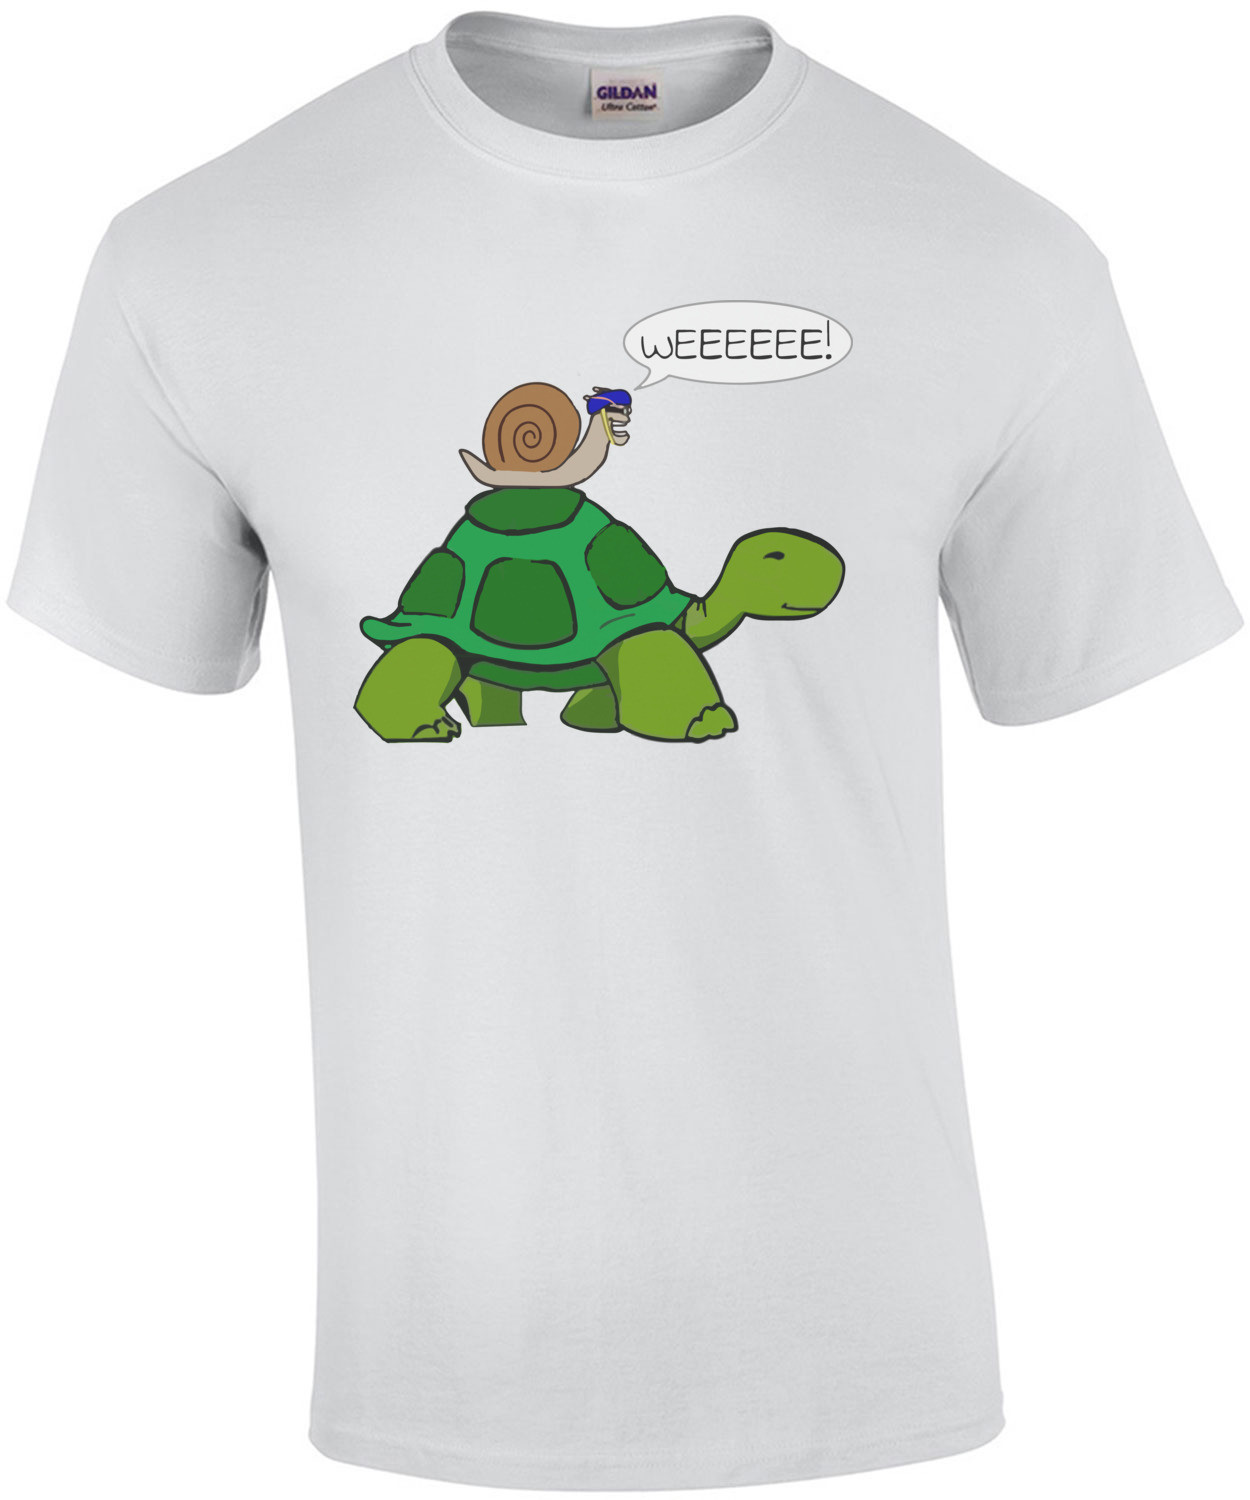 Snail Riding on Turtle WEEEEE Funny T-Shirt